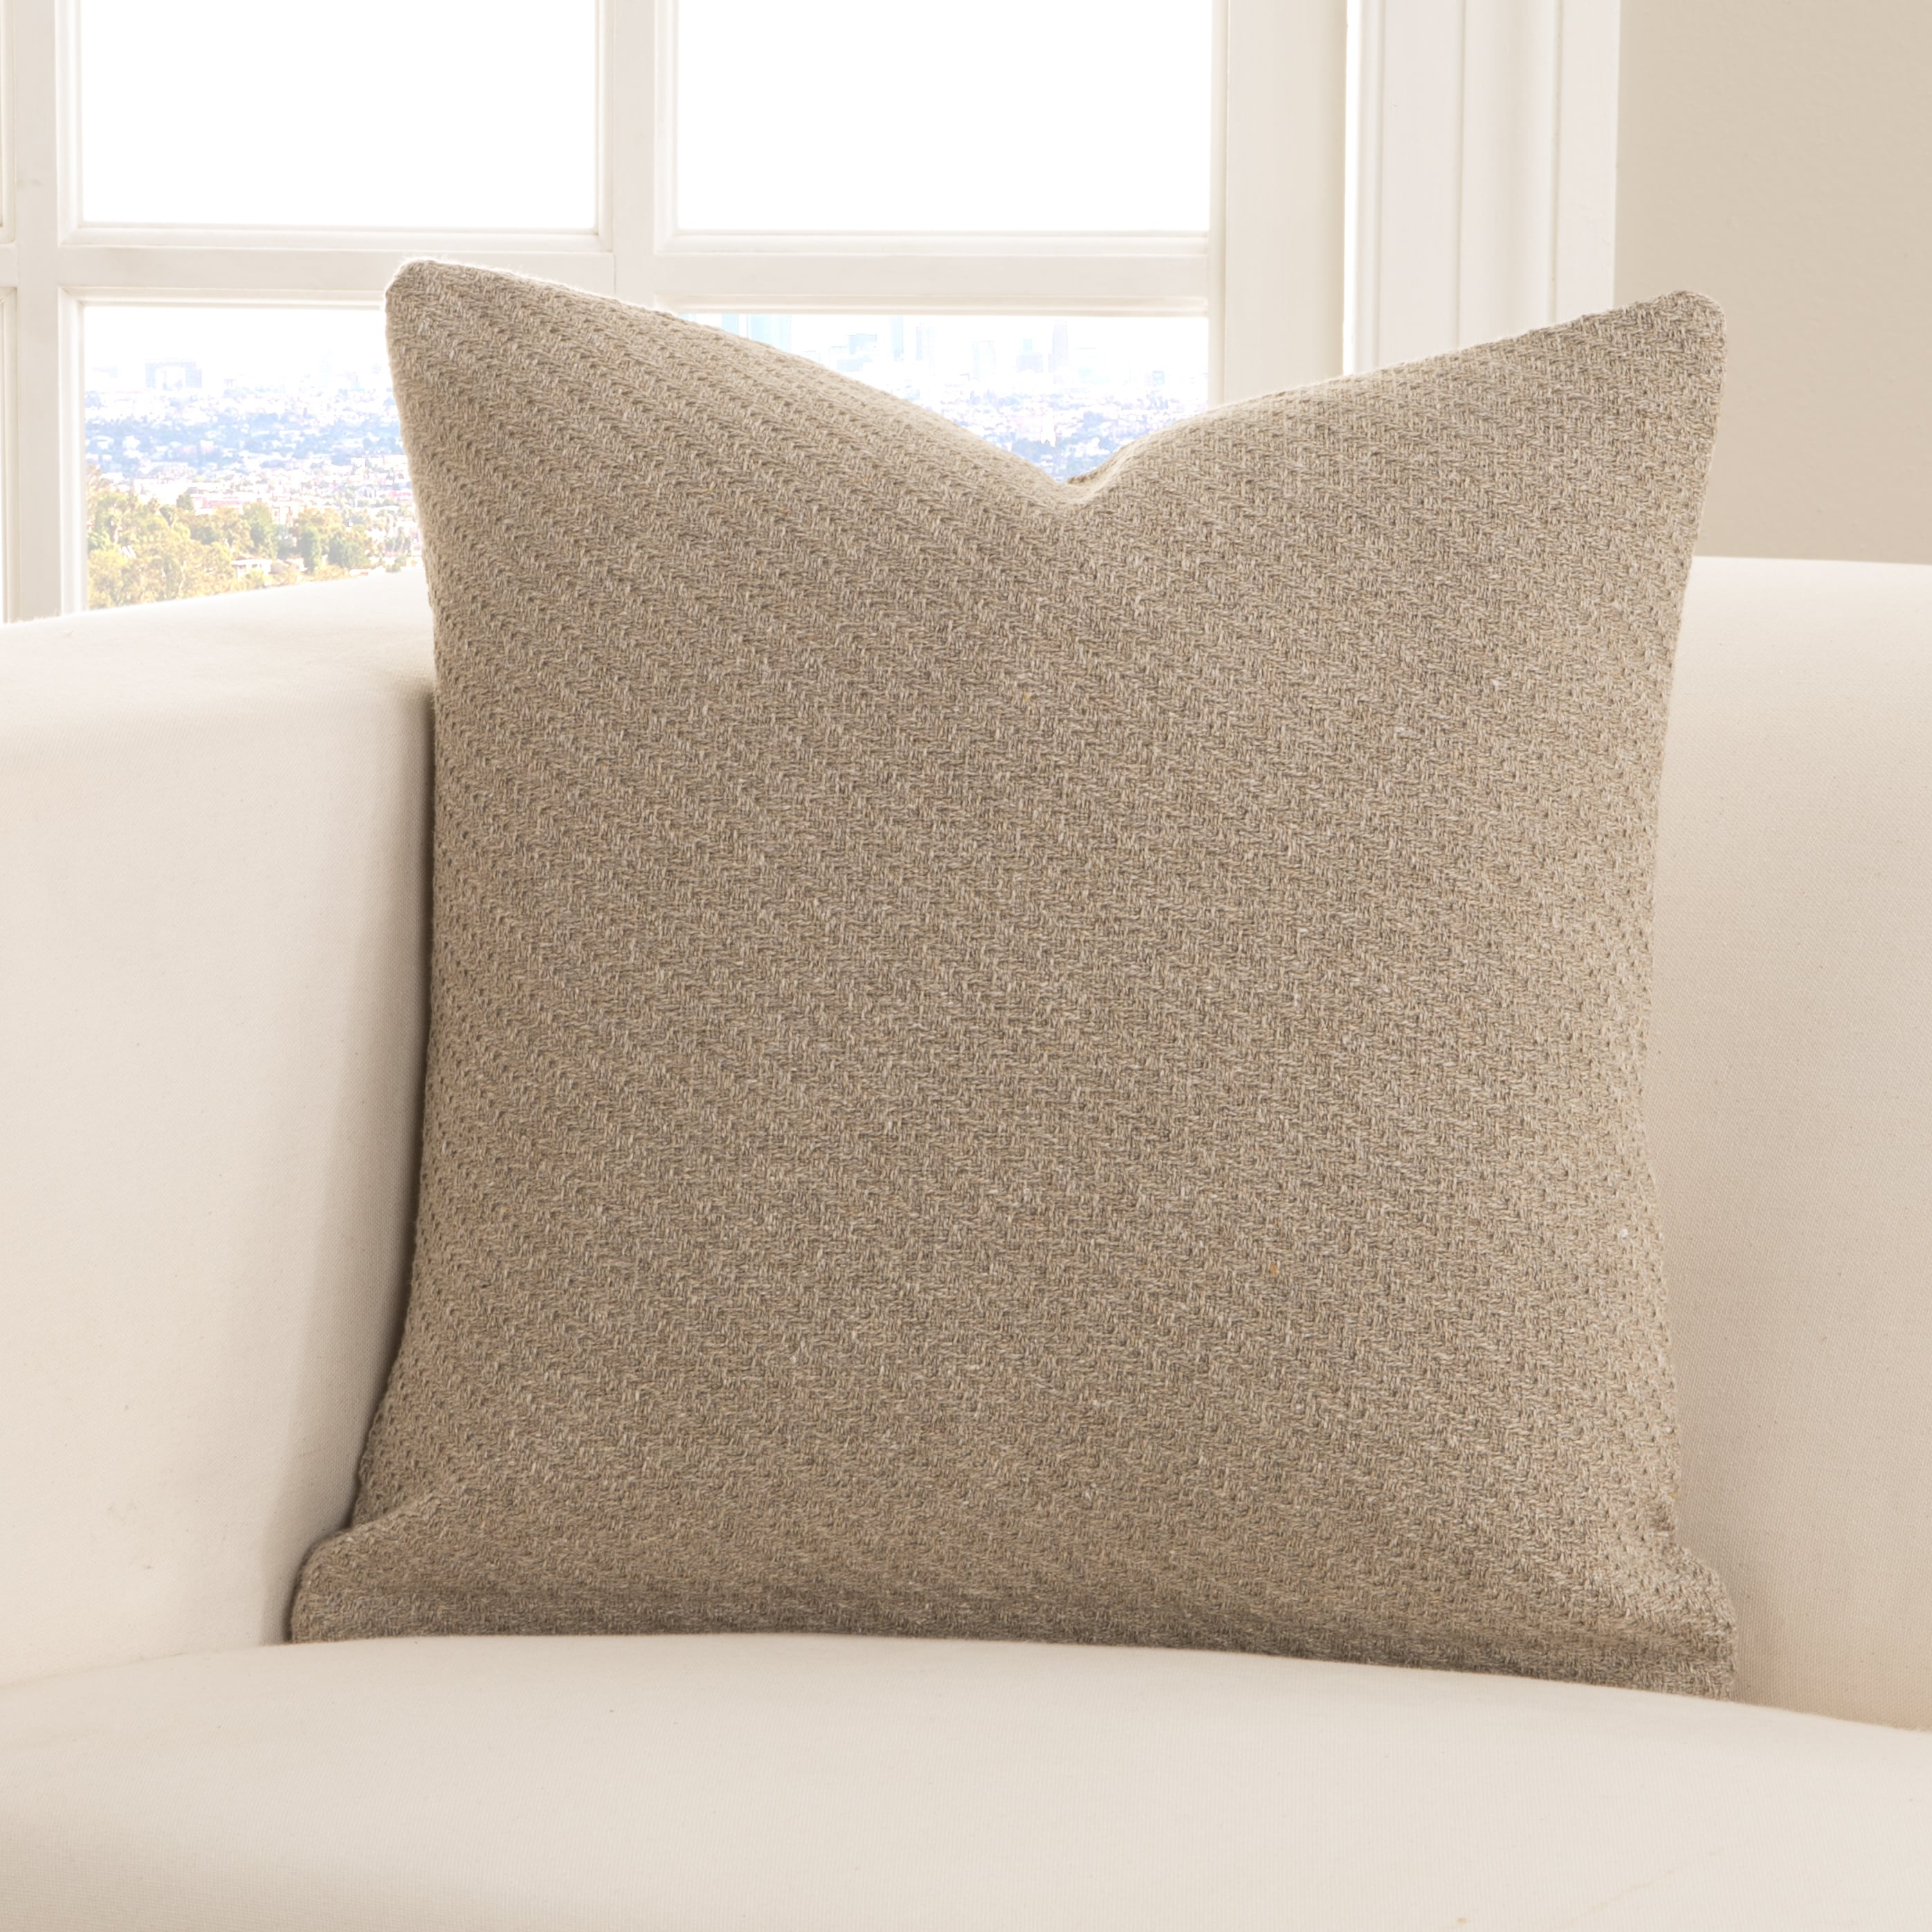 Siscovers Earthy Toss Tan Cotton Polyester Throw Pillow With Removable Sham Overstock 12426313